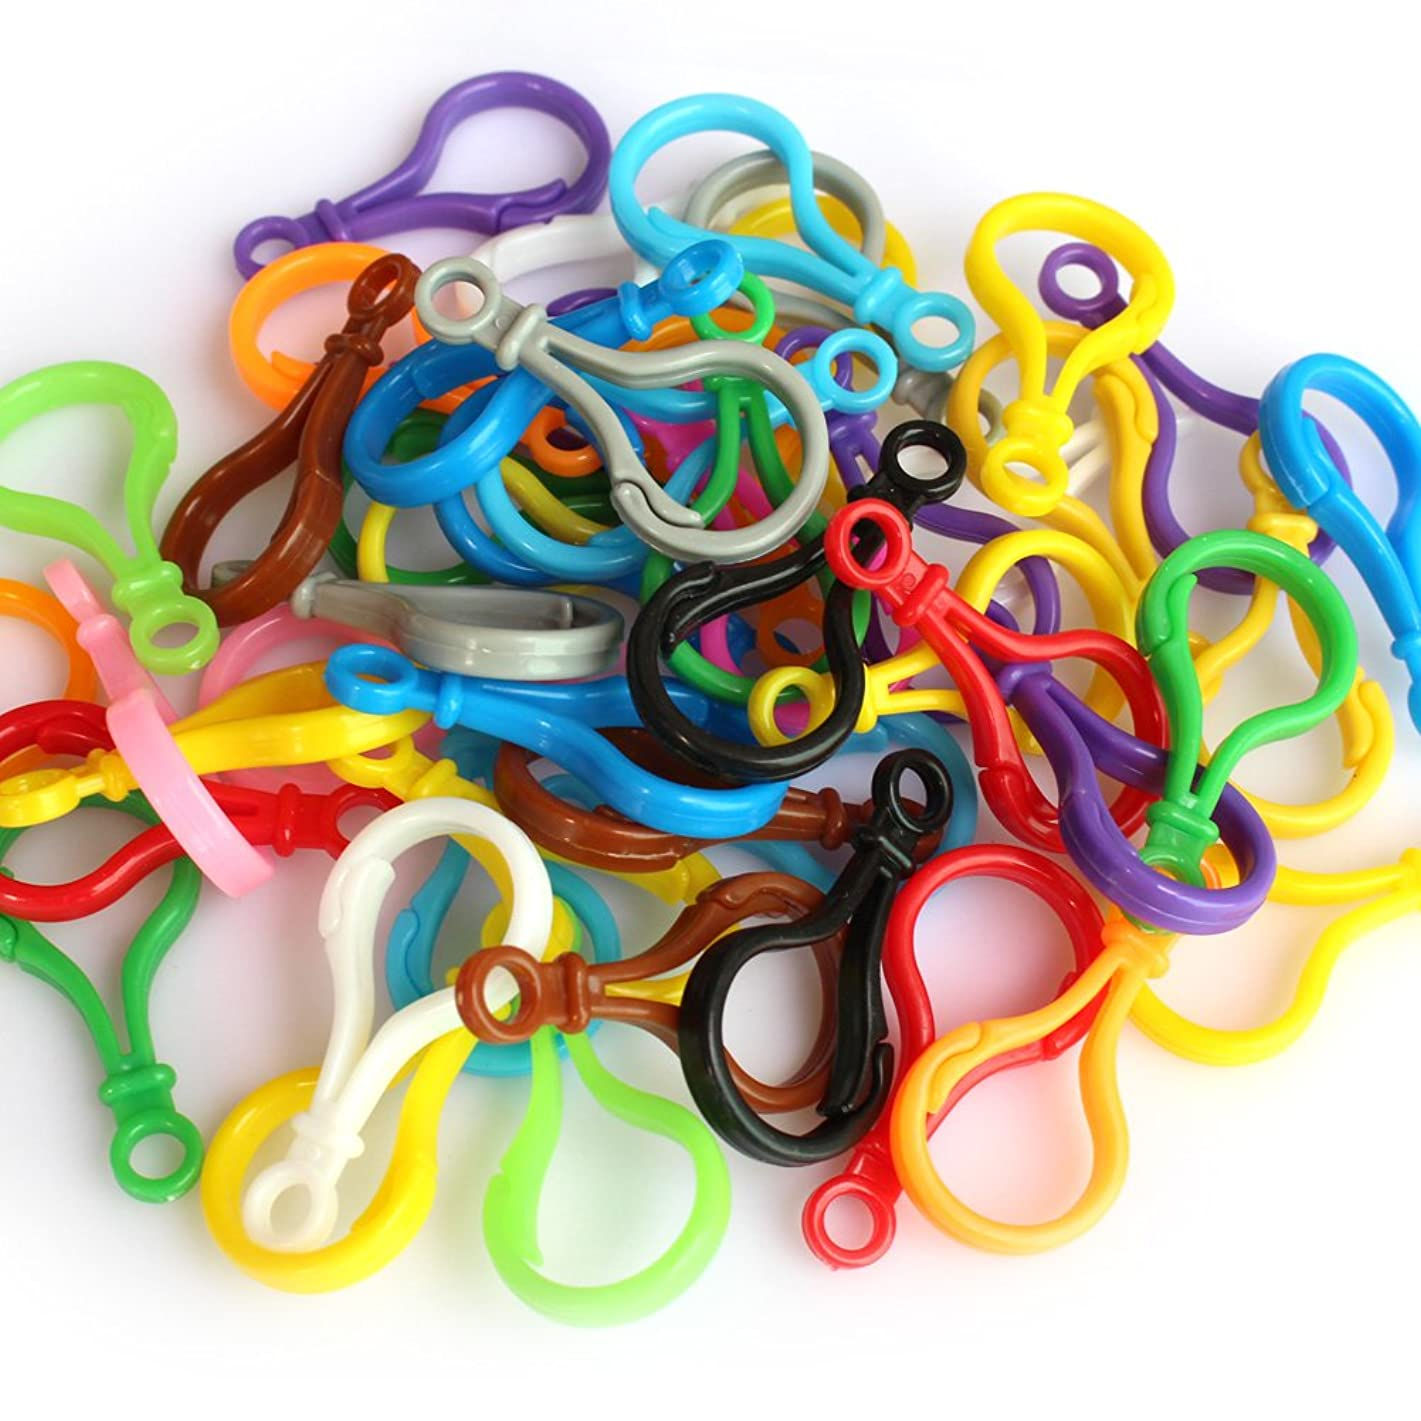 50 PCS Hard Plastic Lobster Clasps Hook for Key Ring/Key Chain/DIY Project, Assorted Colors